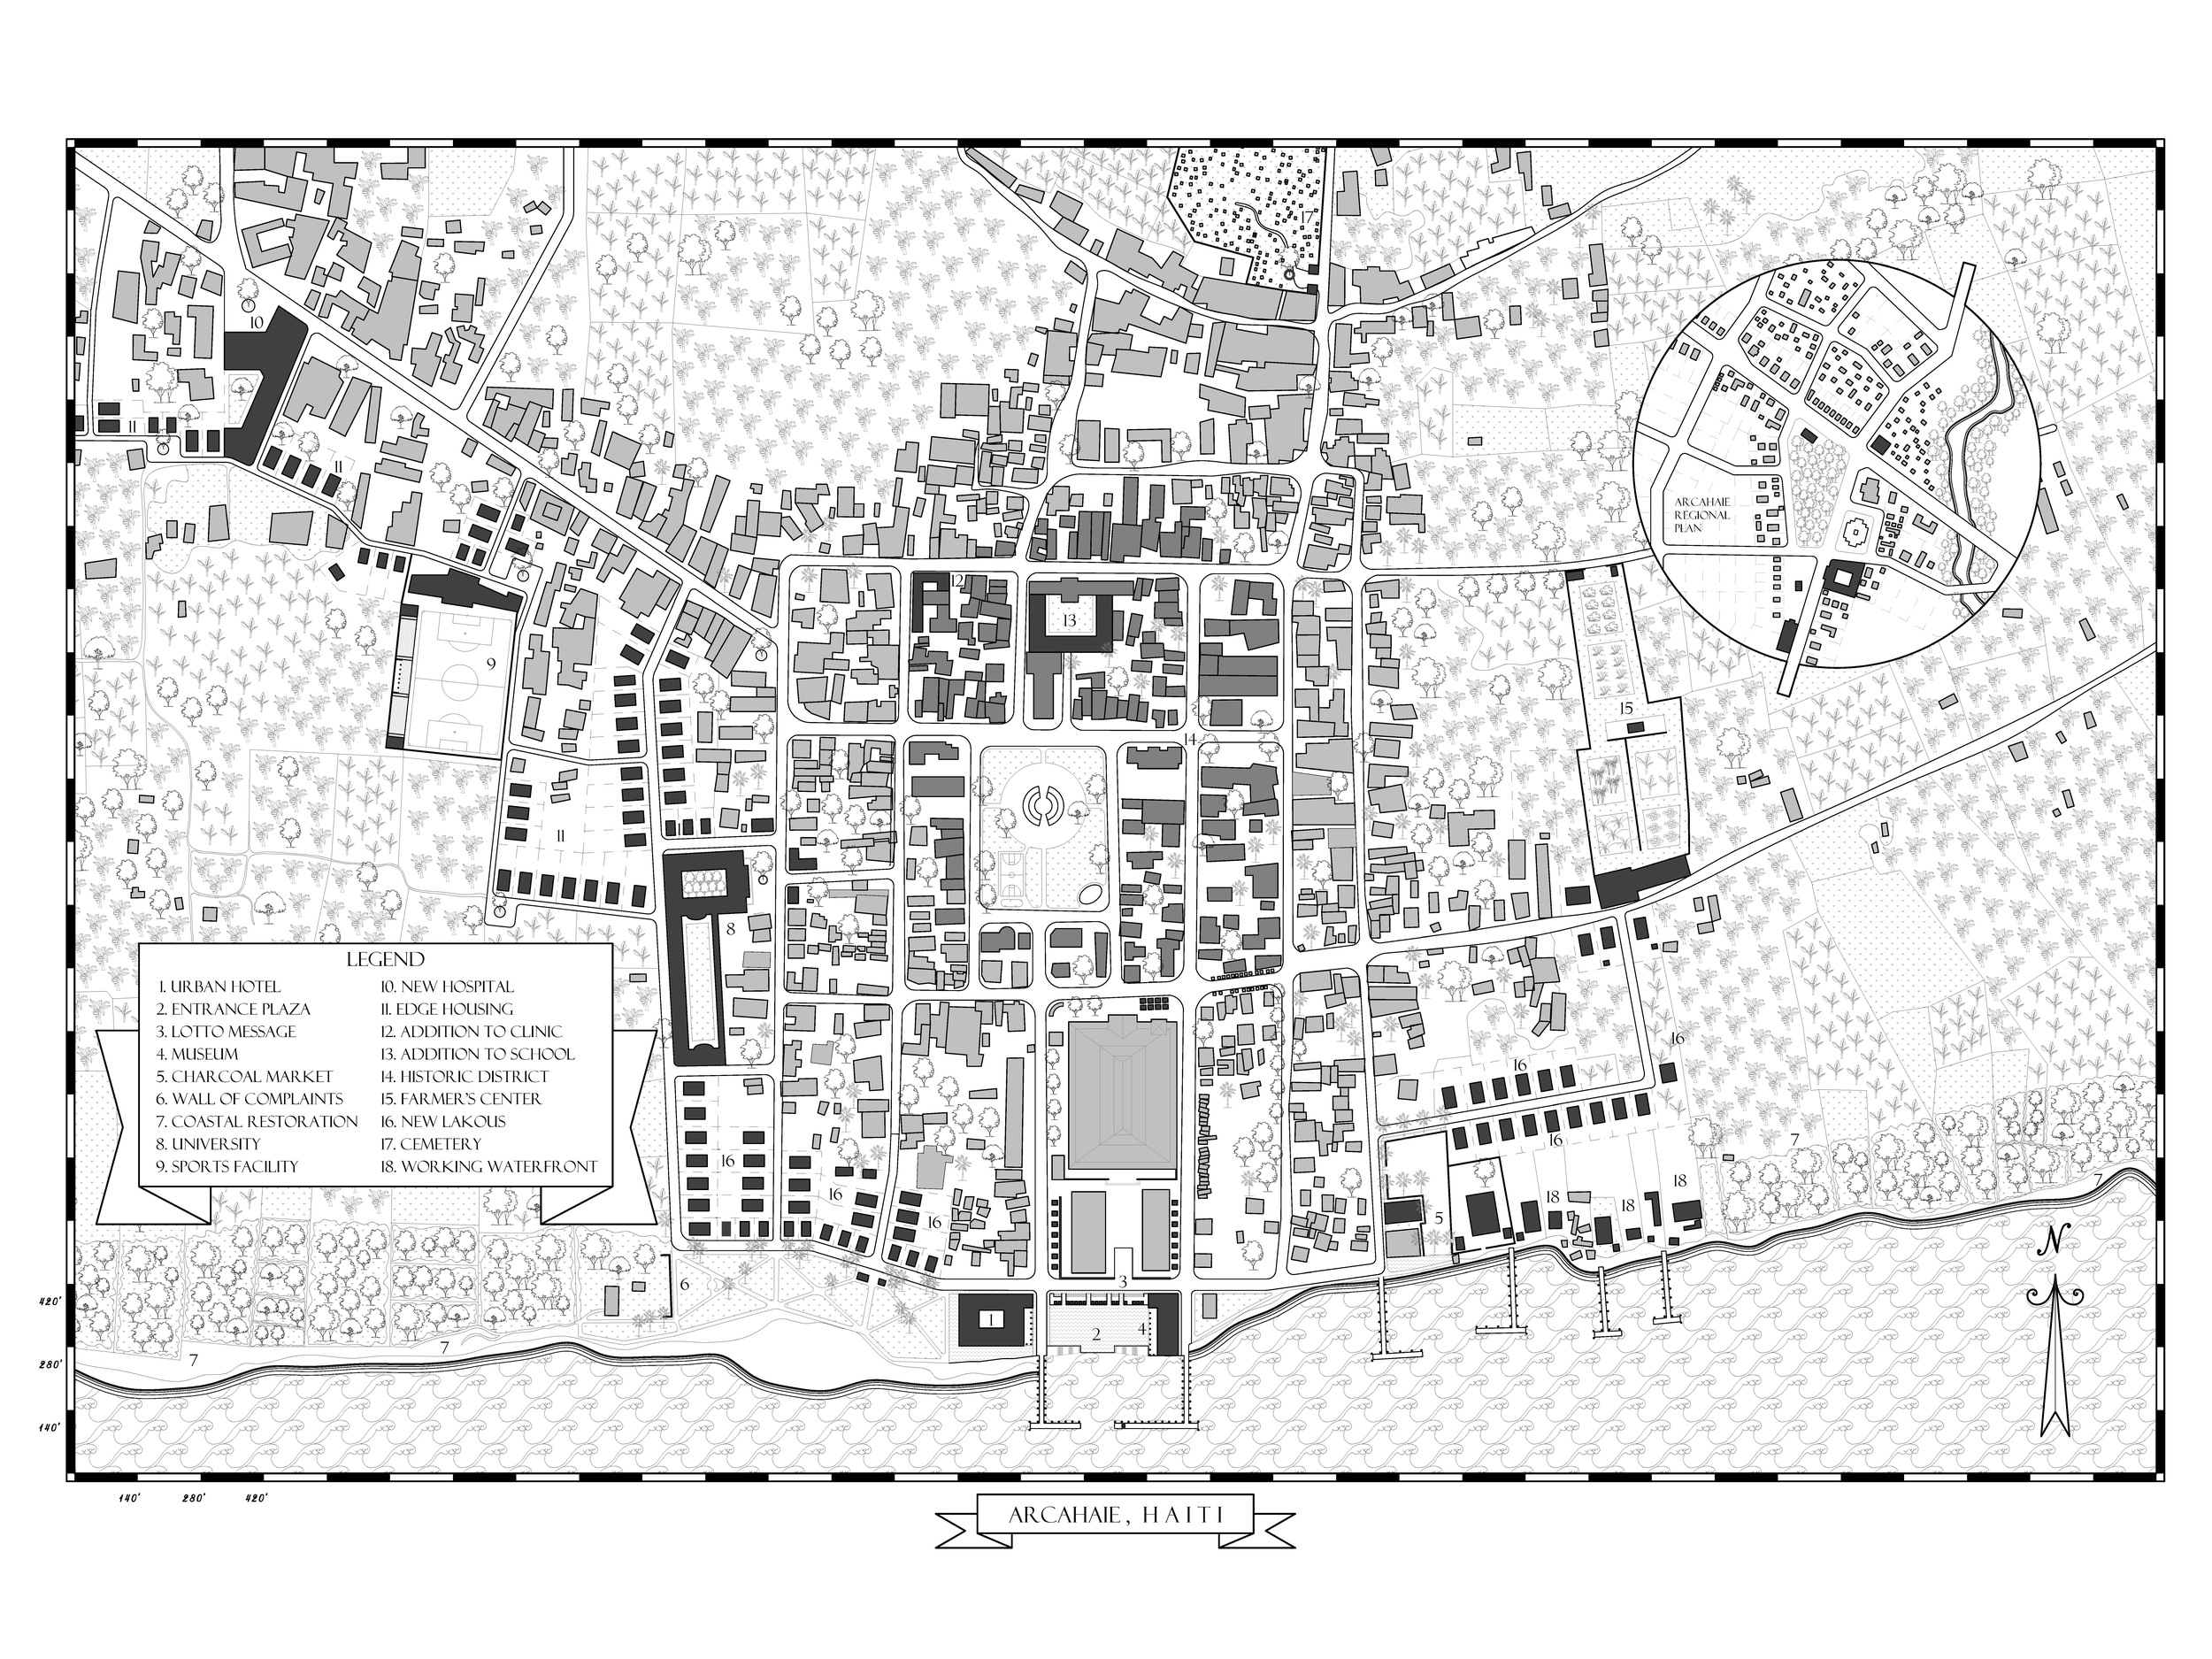 Arcahaie Master Plan with Proposals